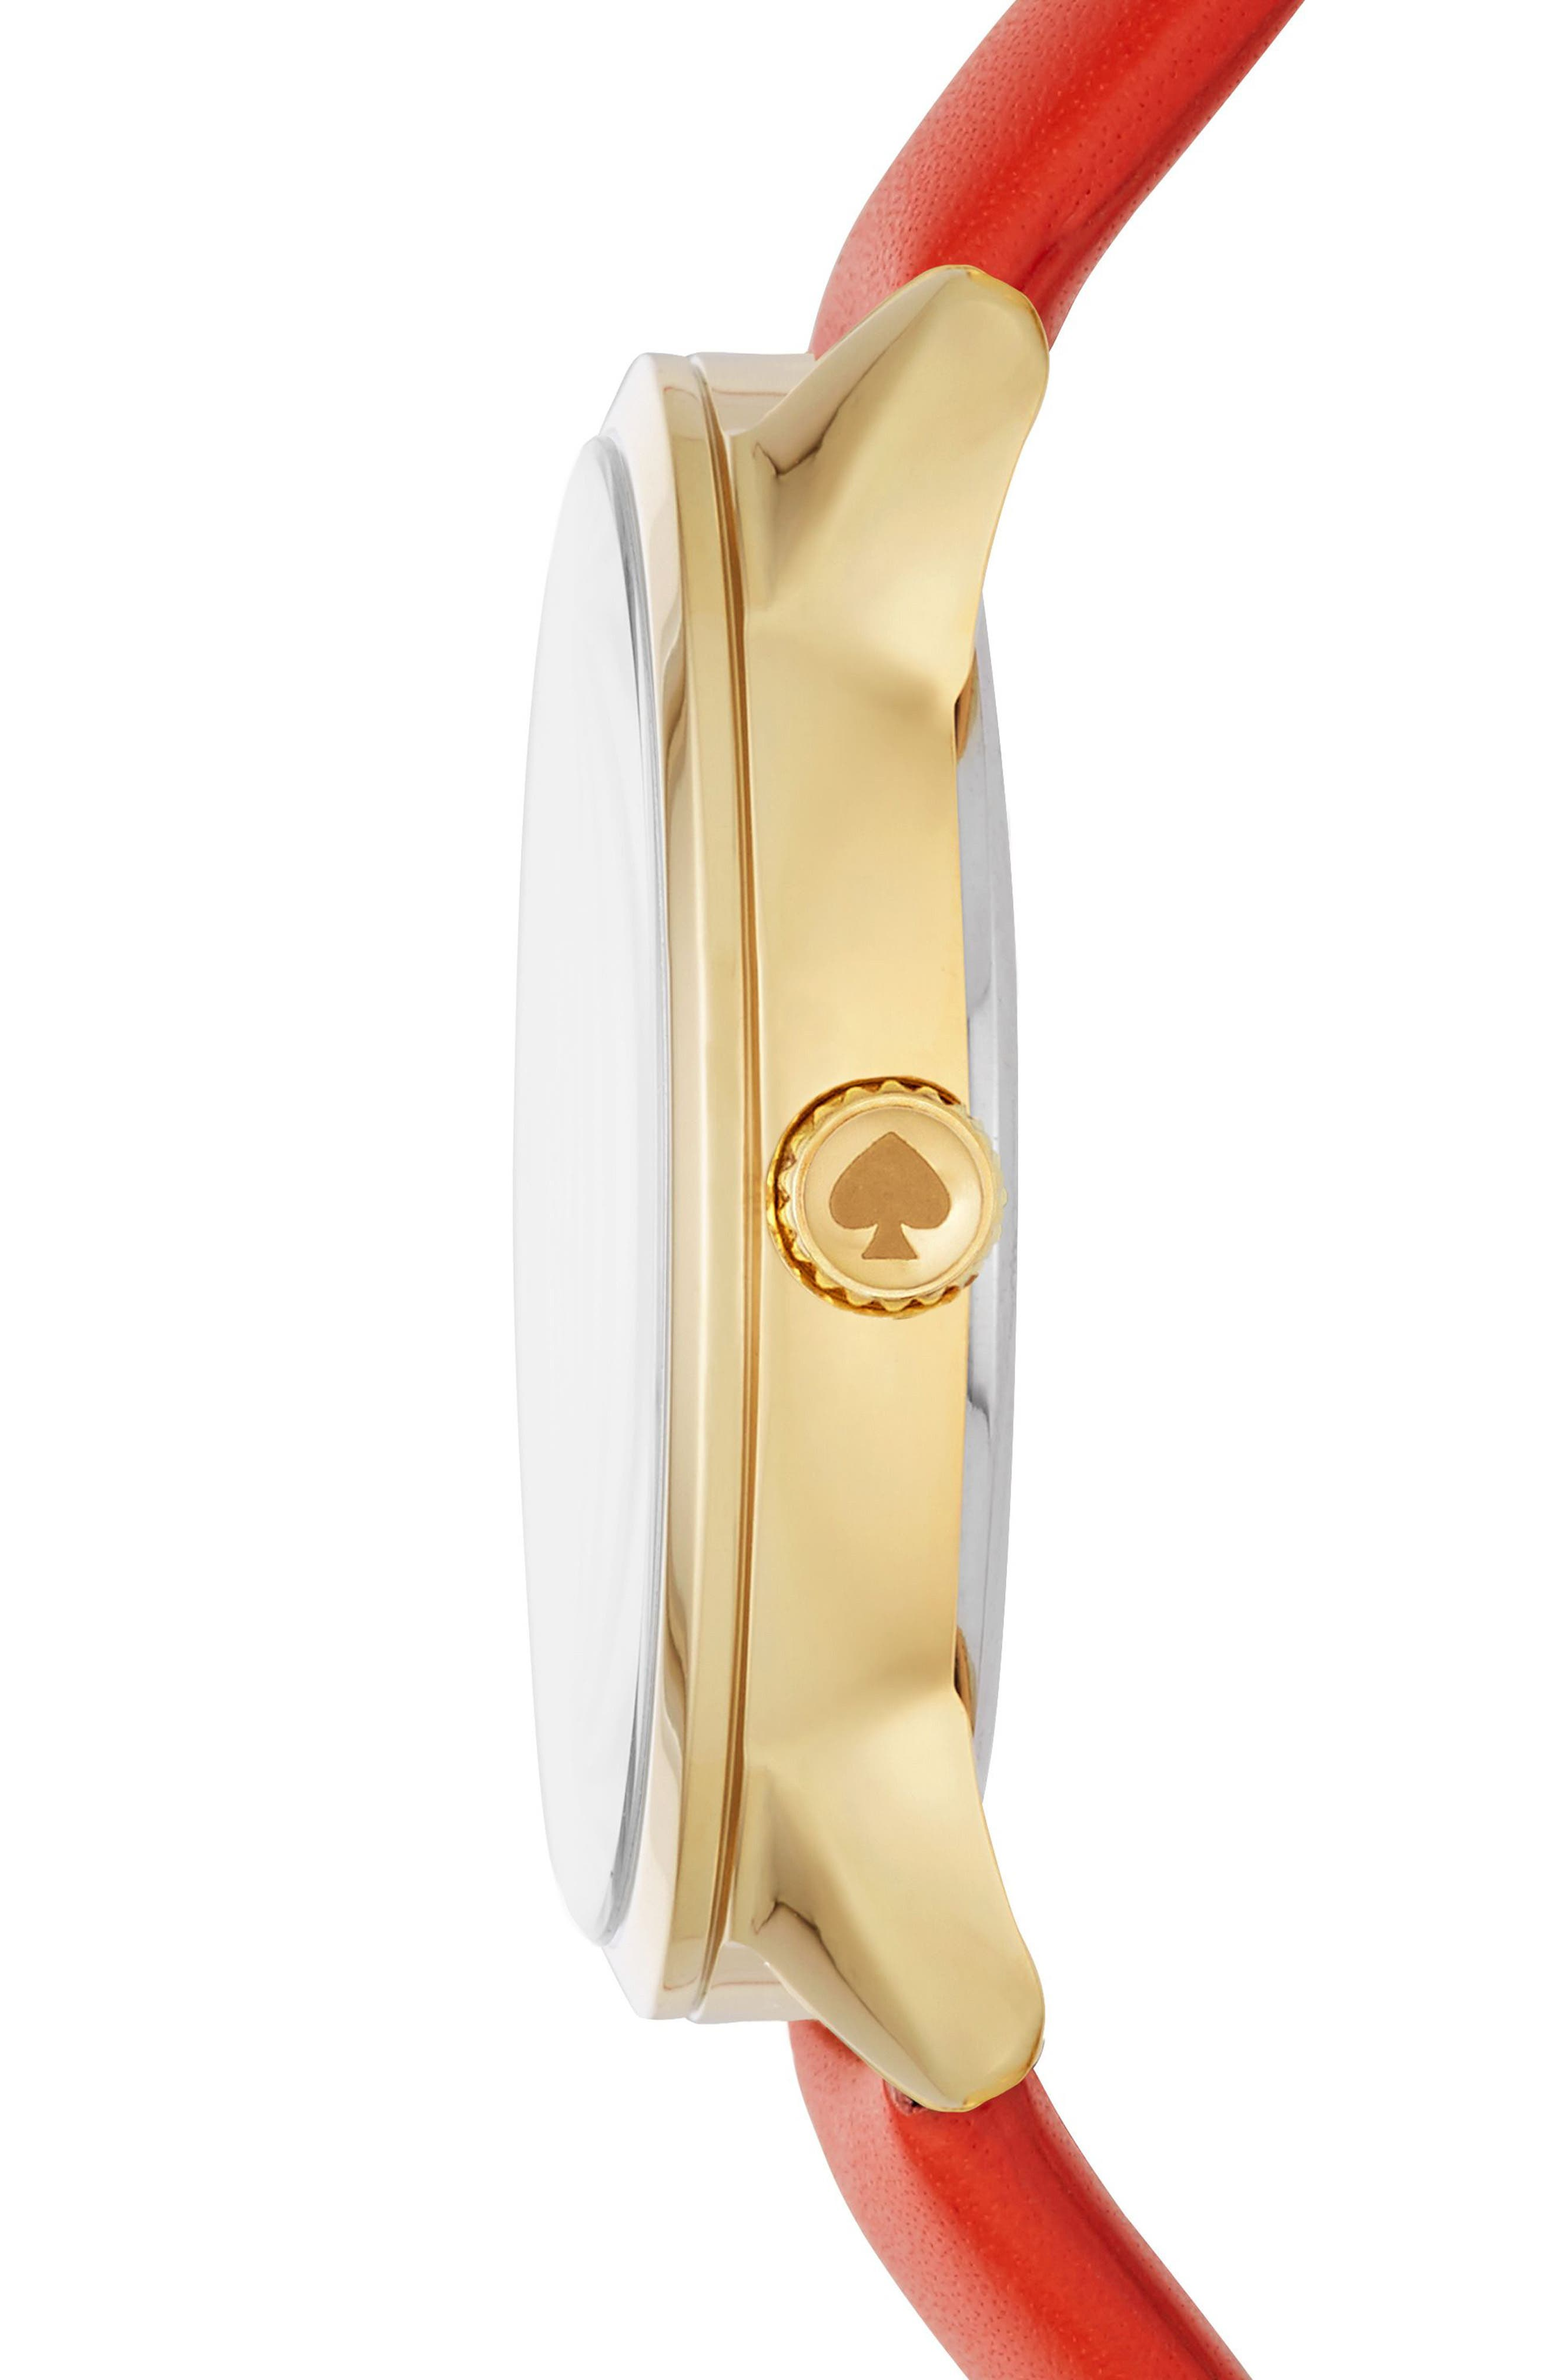 KATE SPADE NEW YORK,                             kate spade cactus crosstown leather strap watch, 34mm,                             Alternate thumbnail 2, color,                             600